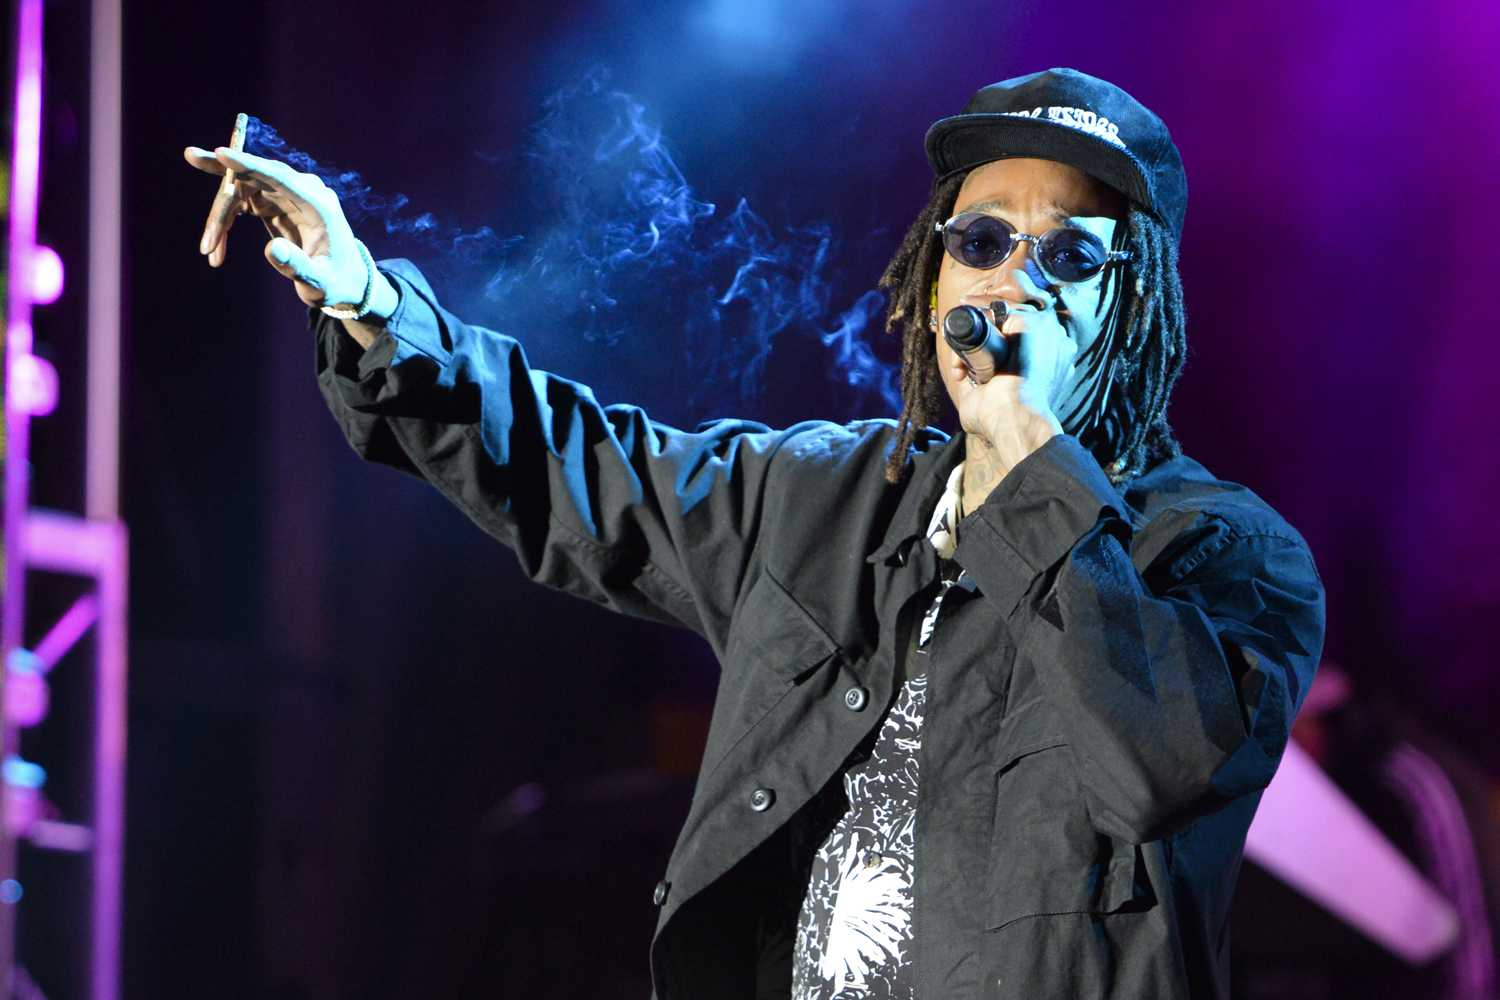 Pittsburgh native Wiz Khalifa returns to the area to perform at Thrival Festival in Swissvale, Pennsylvania. (Photo by Issi Glatts | Staff Photographer)